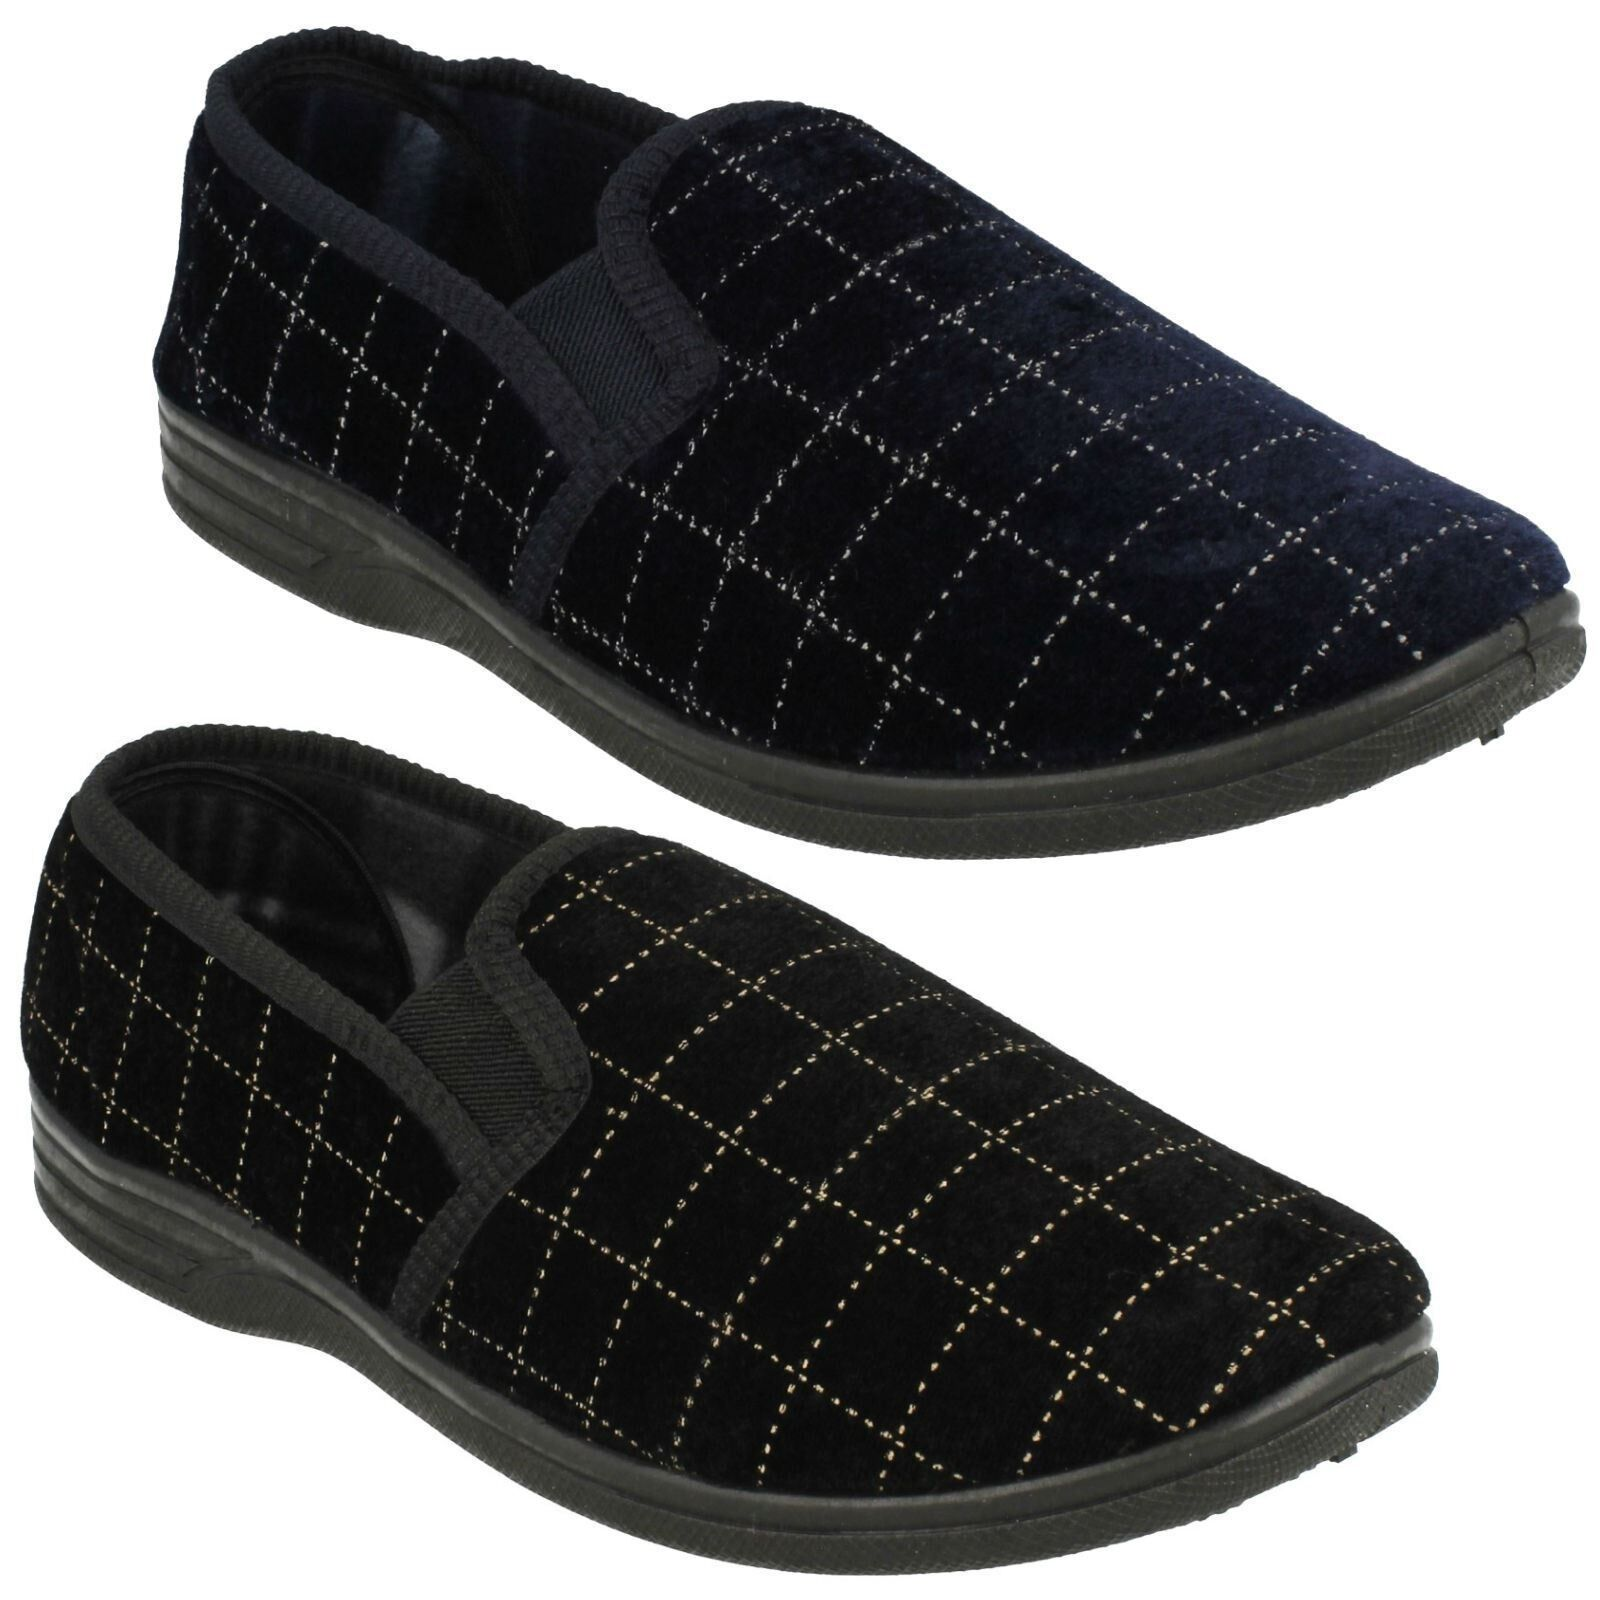 MENS COMFORTABLE SPOT ON CHECK DESIGN COMFORTABLE MENS BLACK NAVY HOME WINTER SLIPPERS MS44 SIZES 349d18